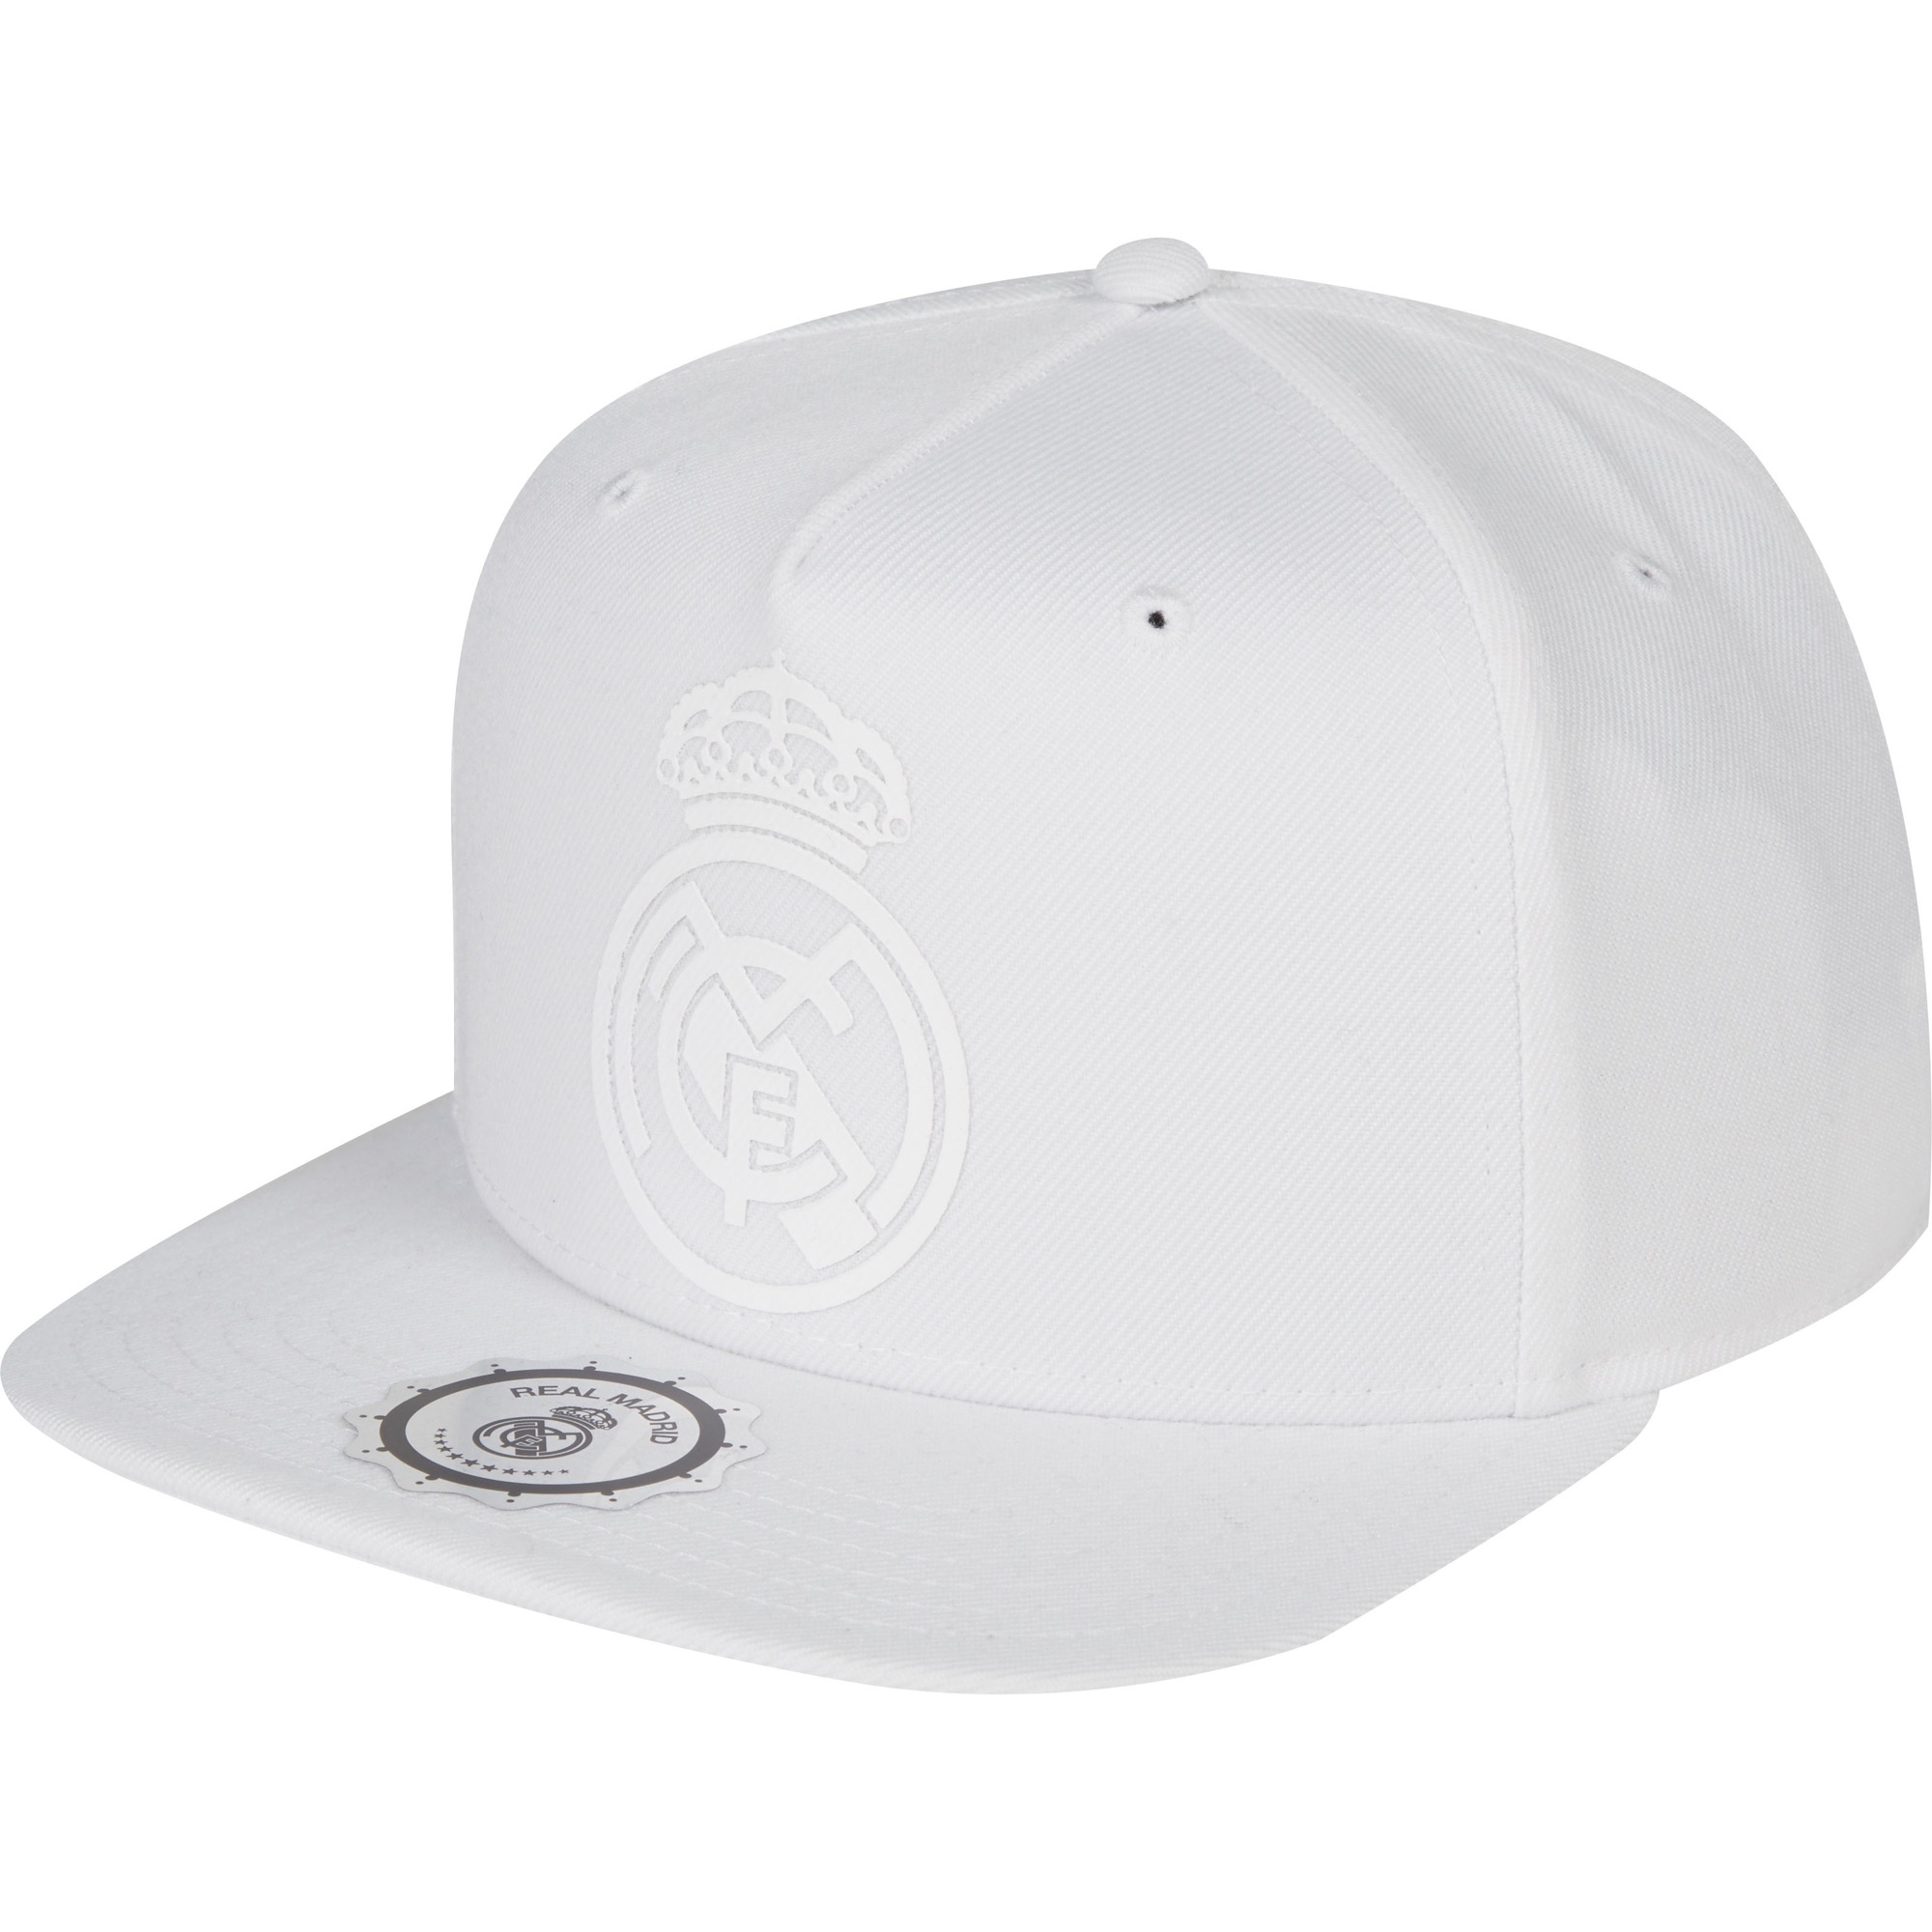 Casquette réglable Real Madrid - Blanc - Adulte